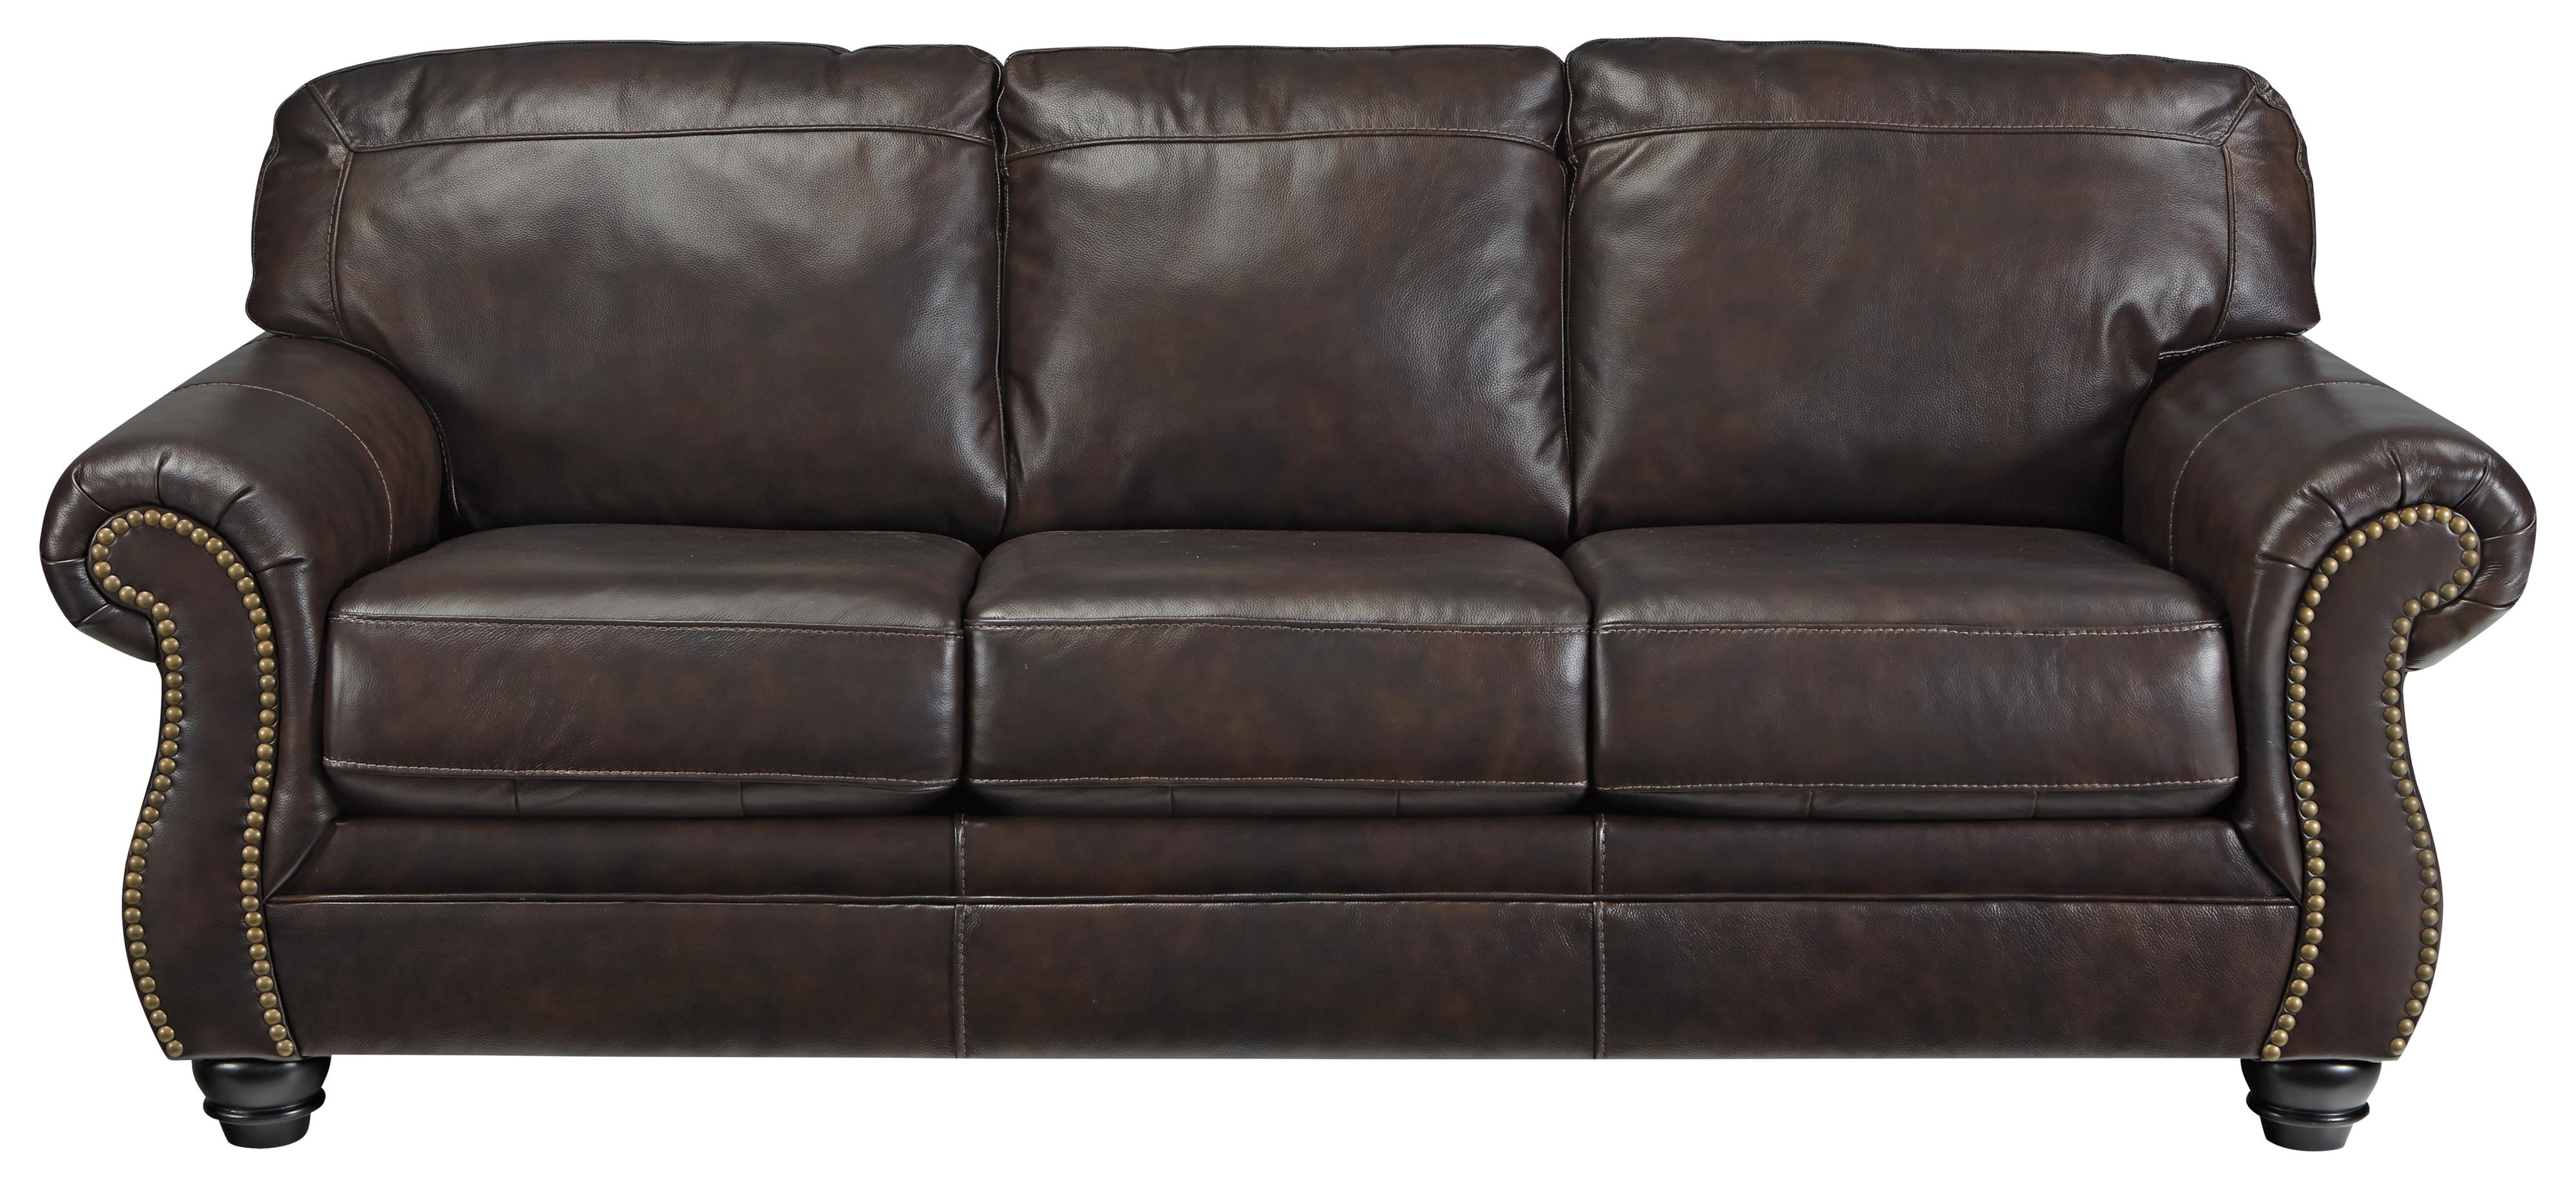 Bristan Traditional Leather Match Queen Sofa Sleeper With Rolled Arms Nailhead Trim By Signature Design By Ashley At Household Furniture